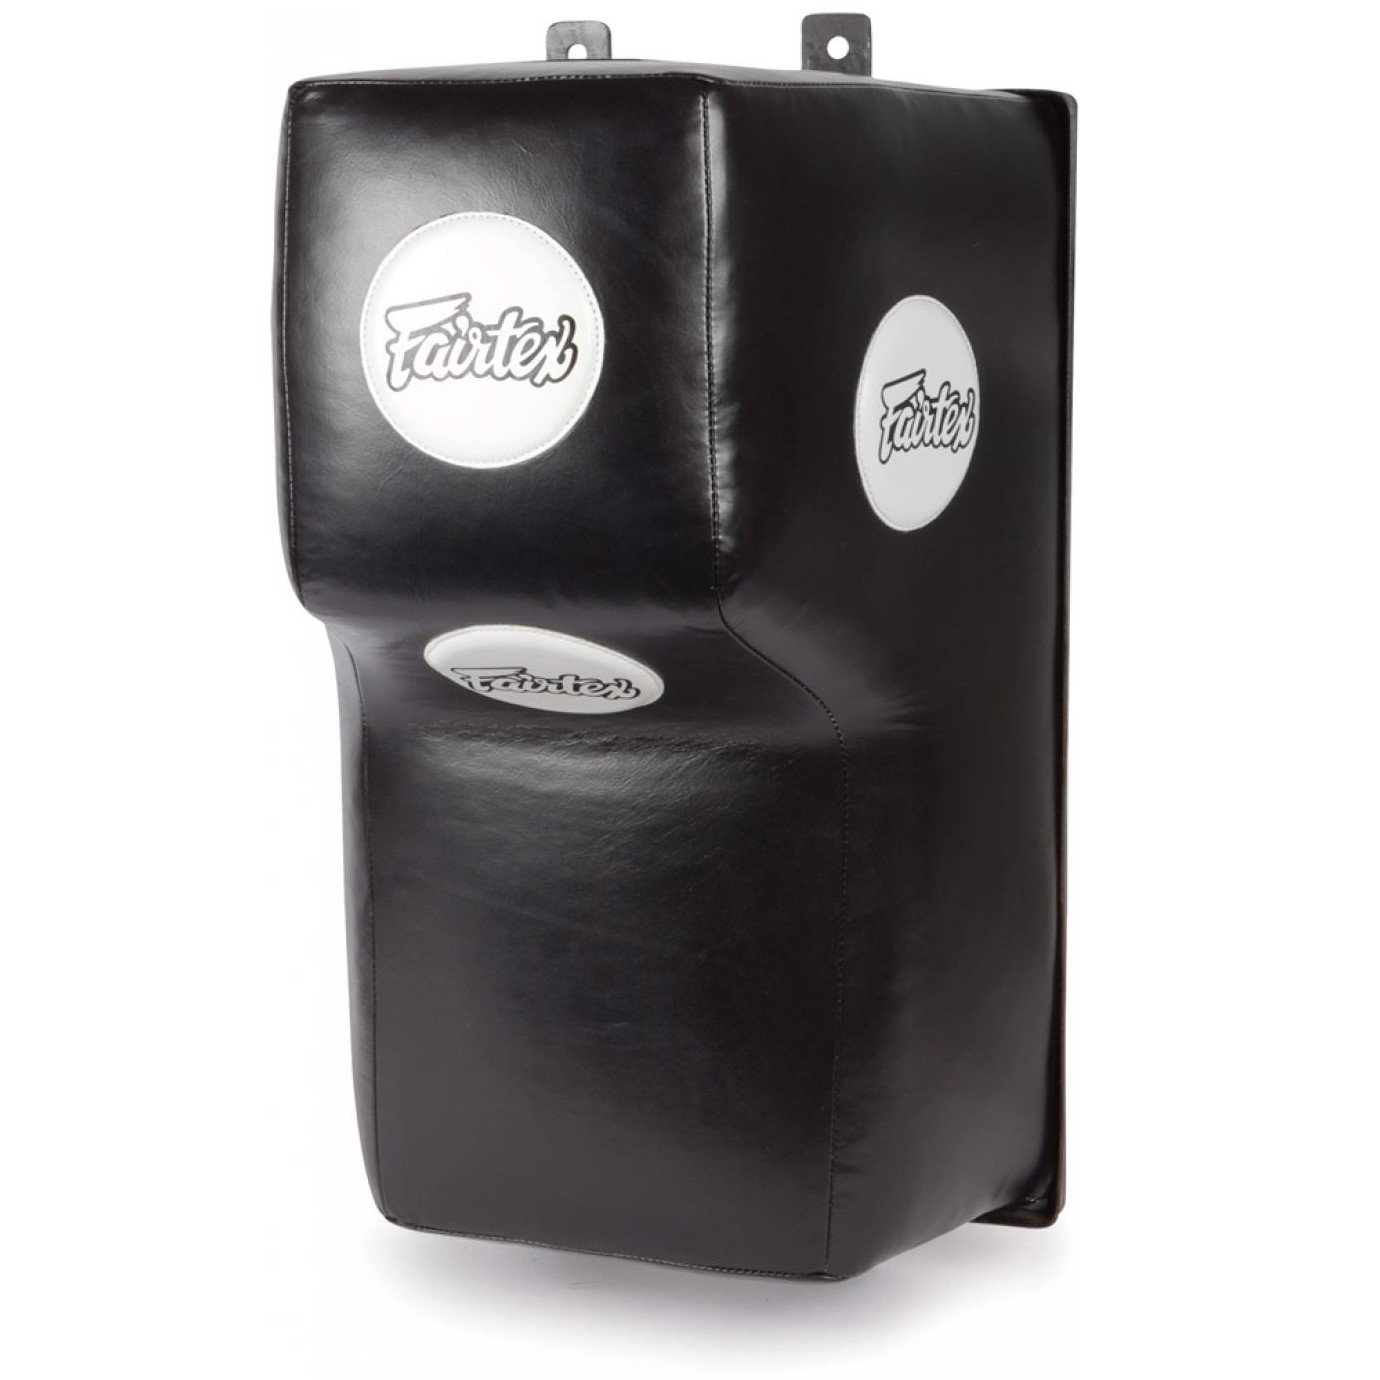 Bao Đấm Gắn Tường Fairtex Uc1 Uppercut And Hook Wall Unit